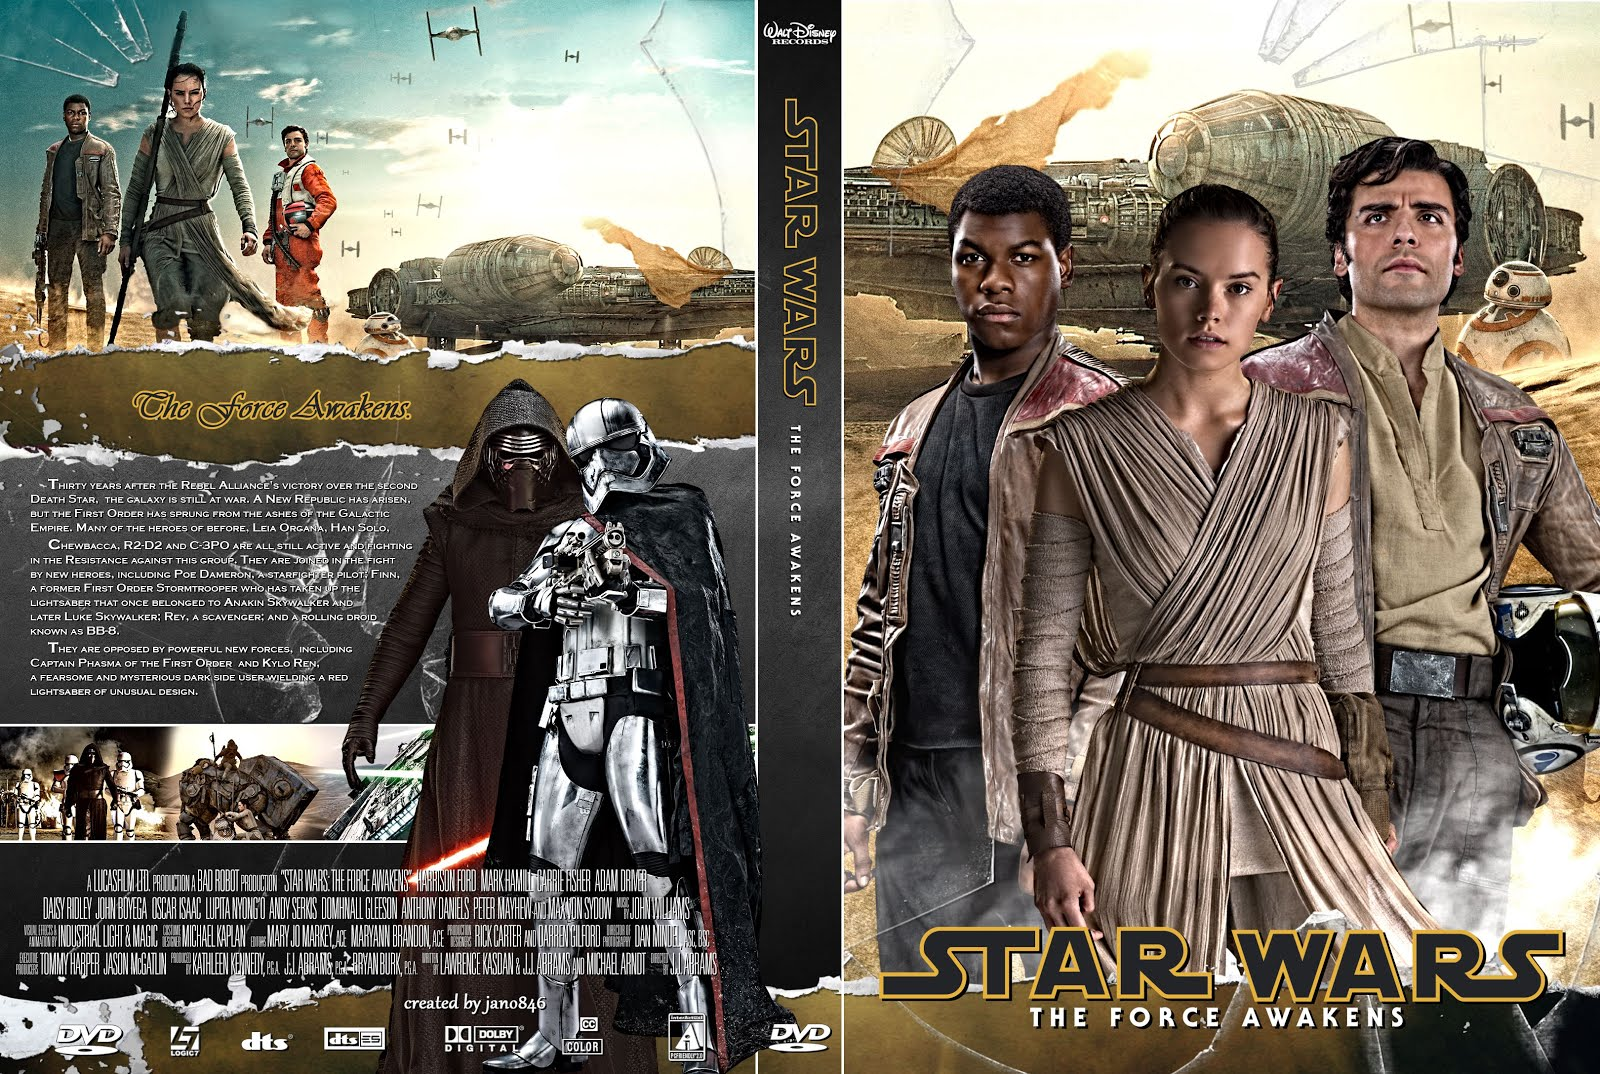 Star Wars O Despertar da Força DVD-R Autorado Star Wars The Force Awakens